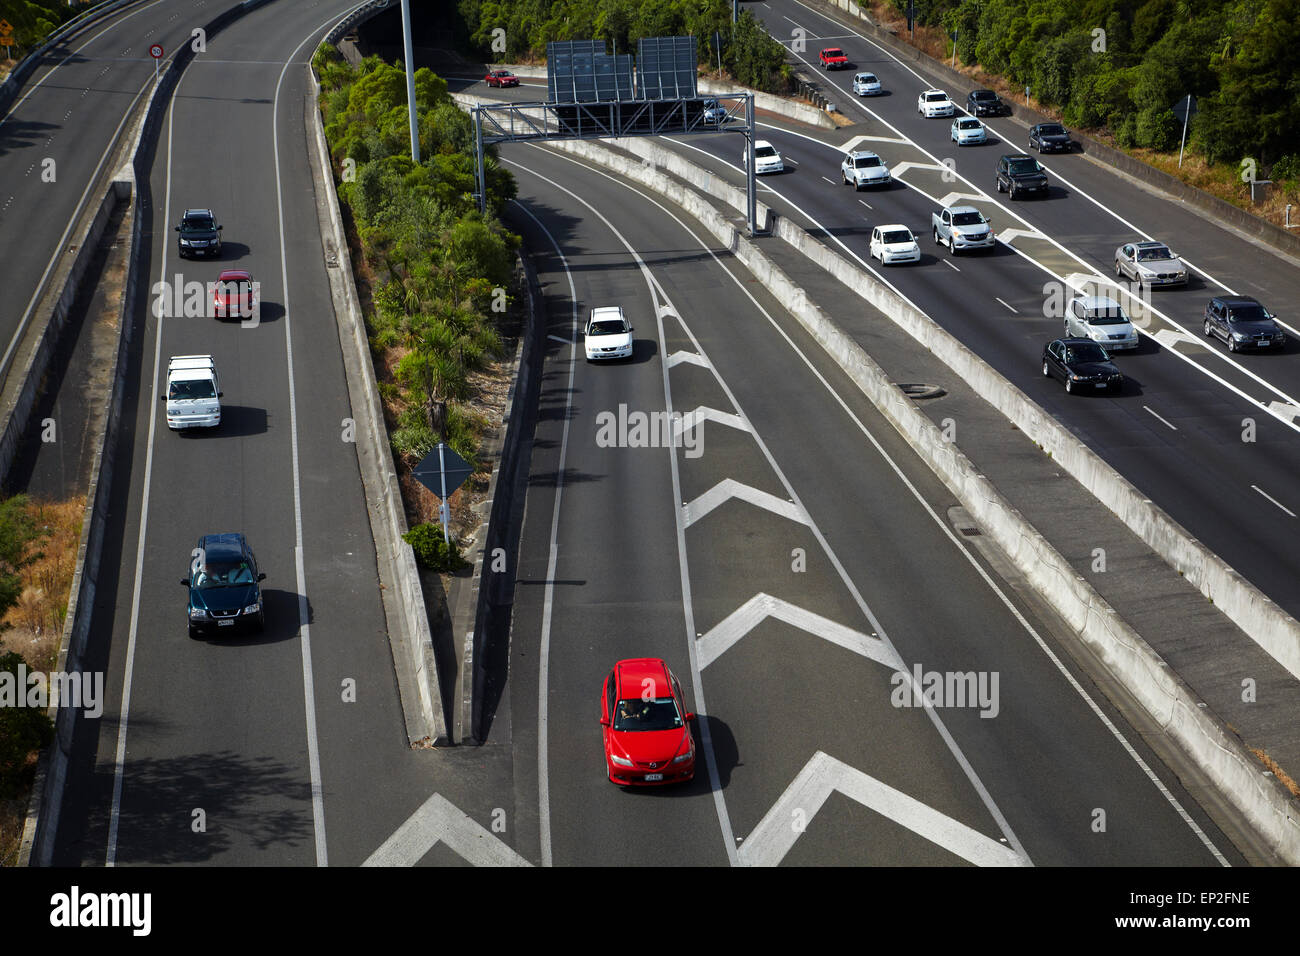 Traffic on motorways, Central Auckland, North Island, New Zealand - Stock Image